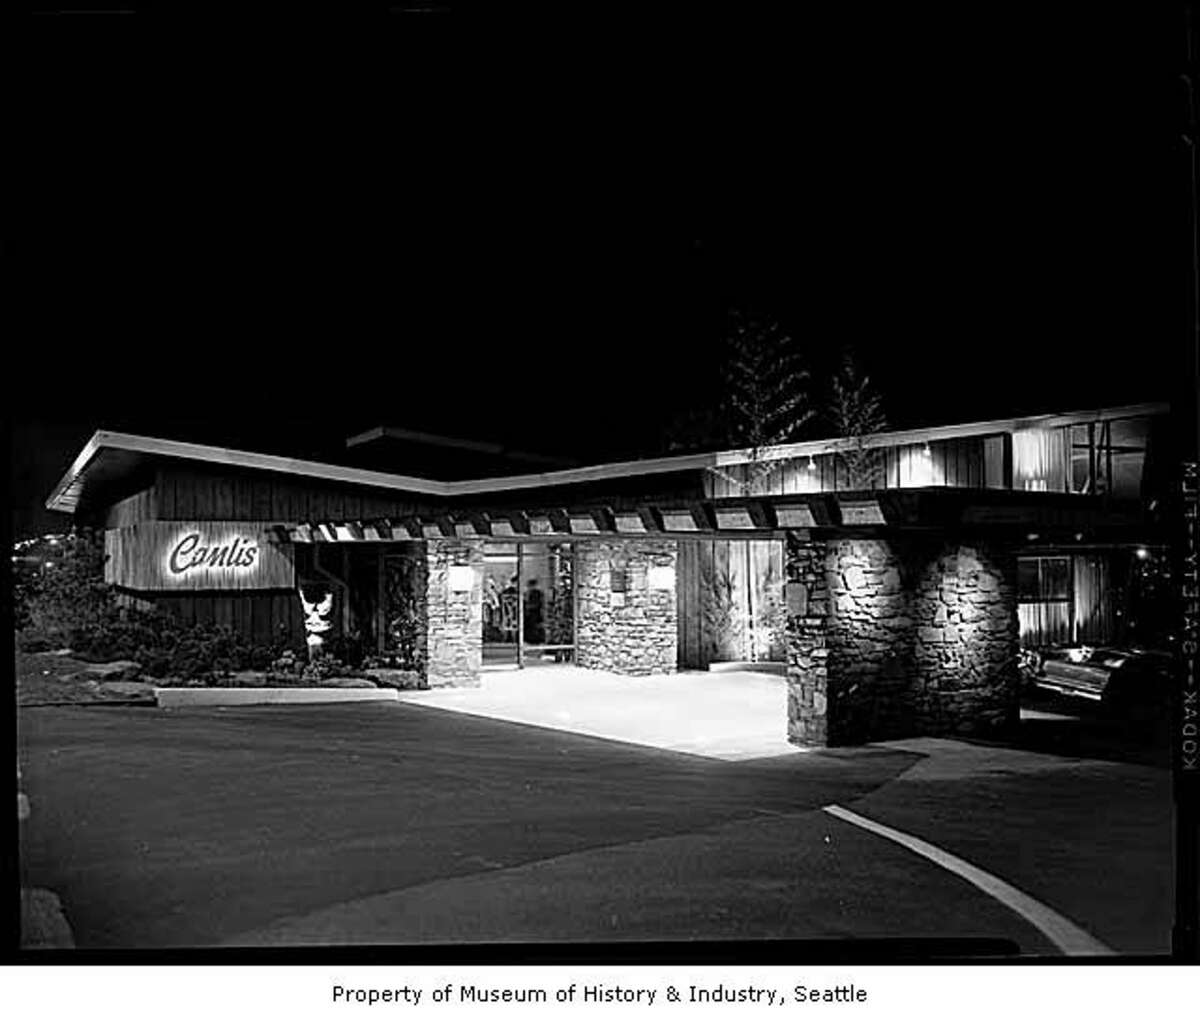 Canlis restaurant at night, Seattle, 1958. Canlis has maintained a reputation as one of Seattle's finest dining establishments. Located at the south end of the Aurora Bridge, the building was designed by Roland Terry and has a wonderful view to the north and east.